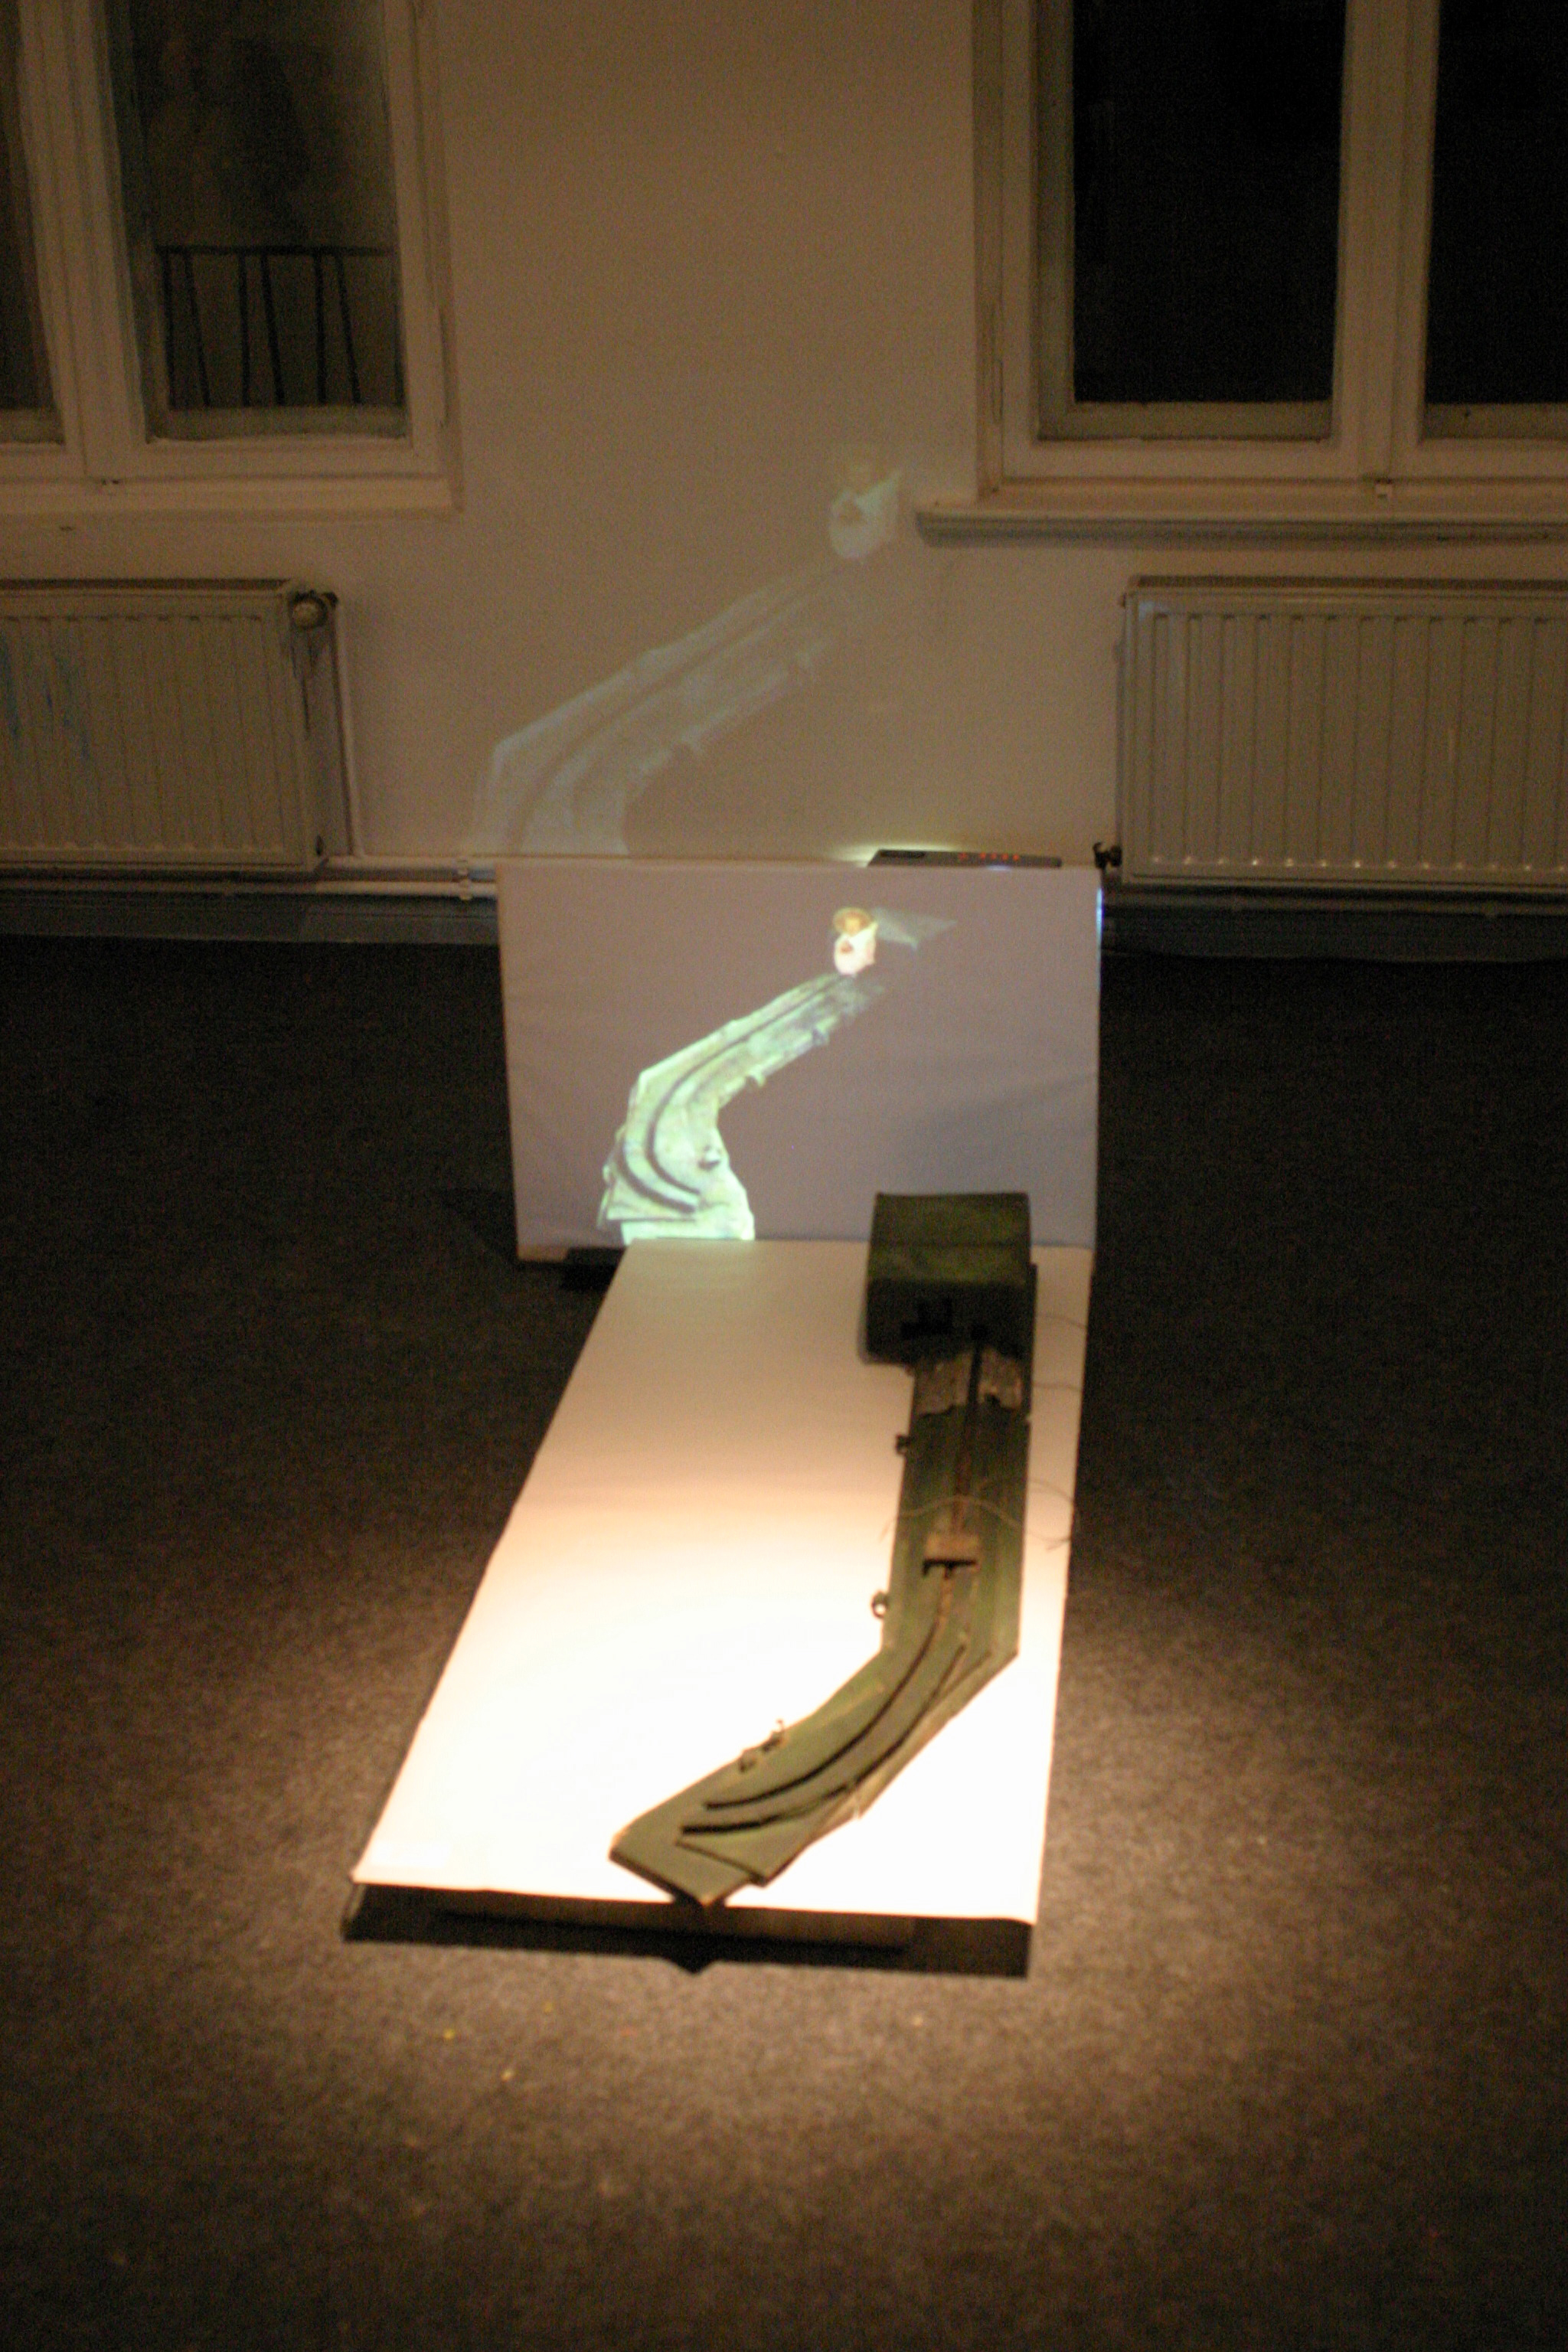 Installation and Photo by Gabriele Heller